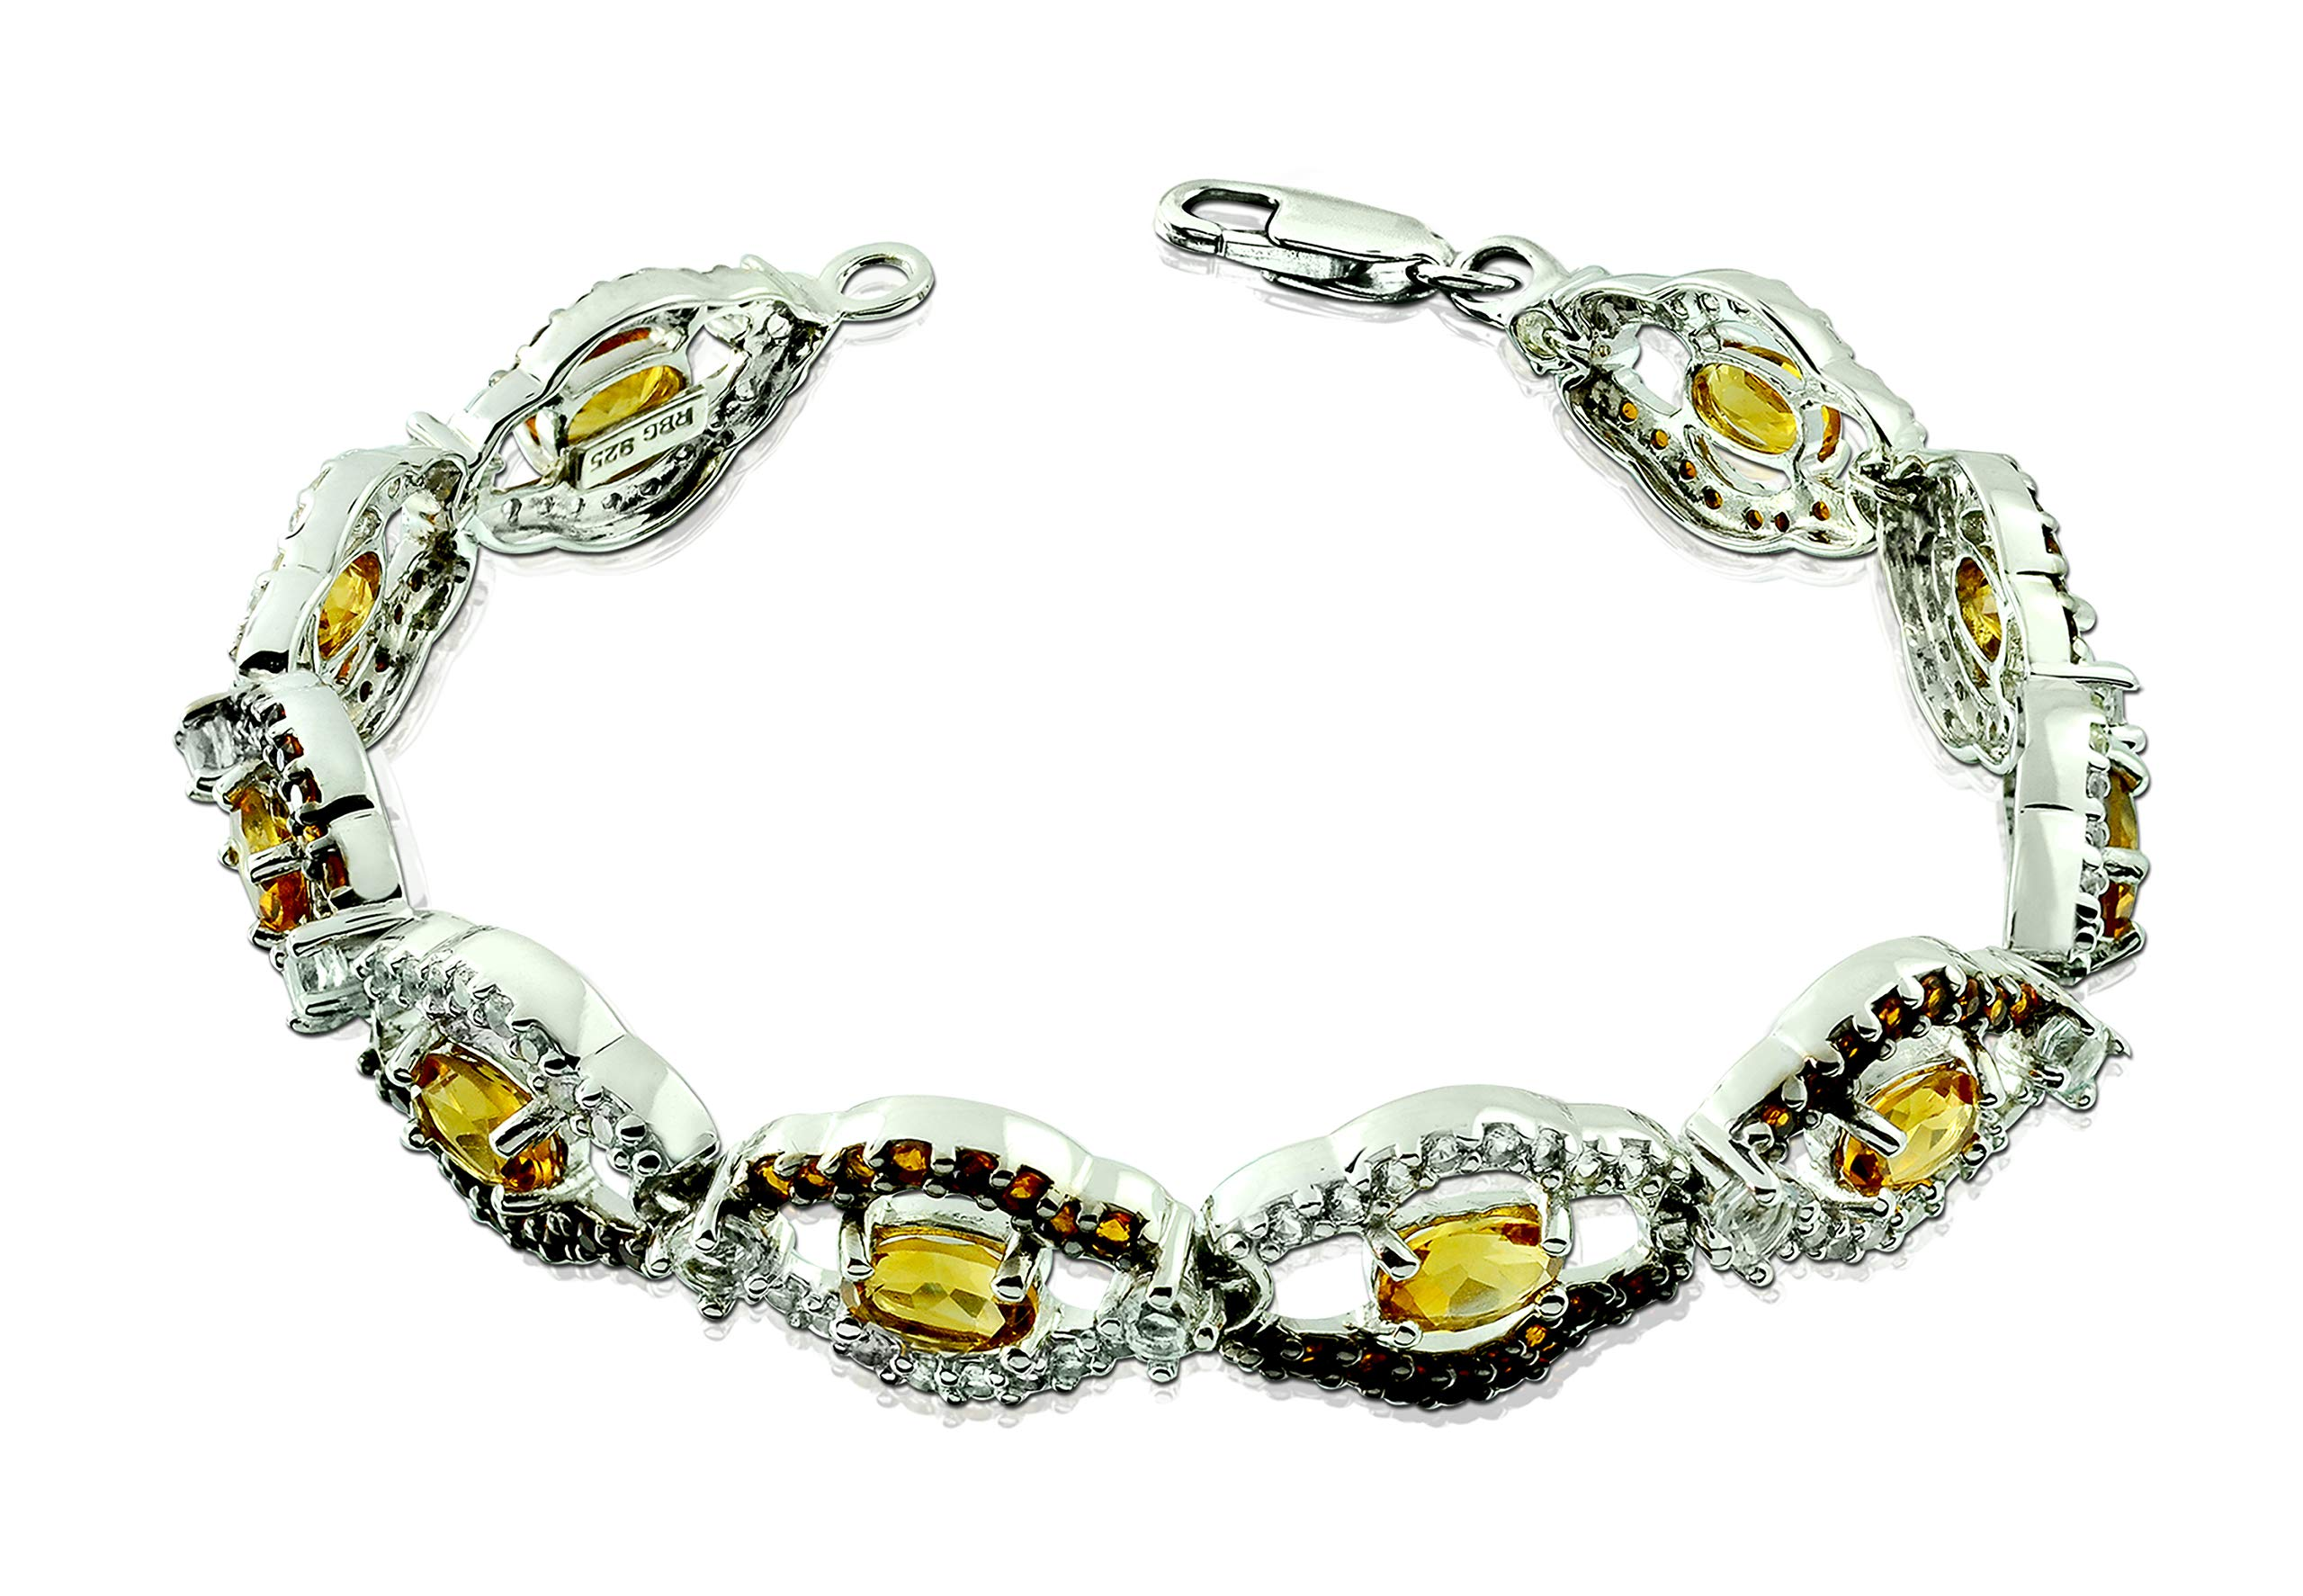 RB Gems Sterling Silver 925 Tennis Bracelet 10 Cts Natural Gemstone Oval, 7'' Long, Lobster Claw Clasp (Yellow) by RB Gems